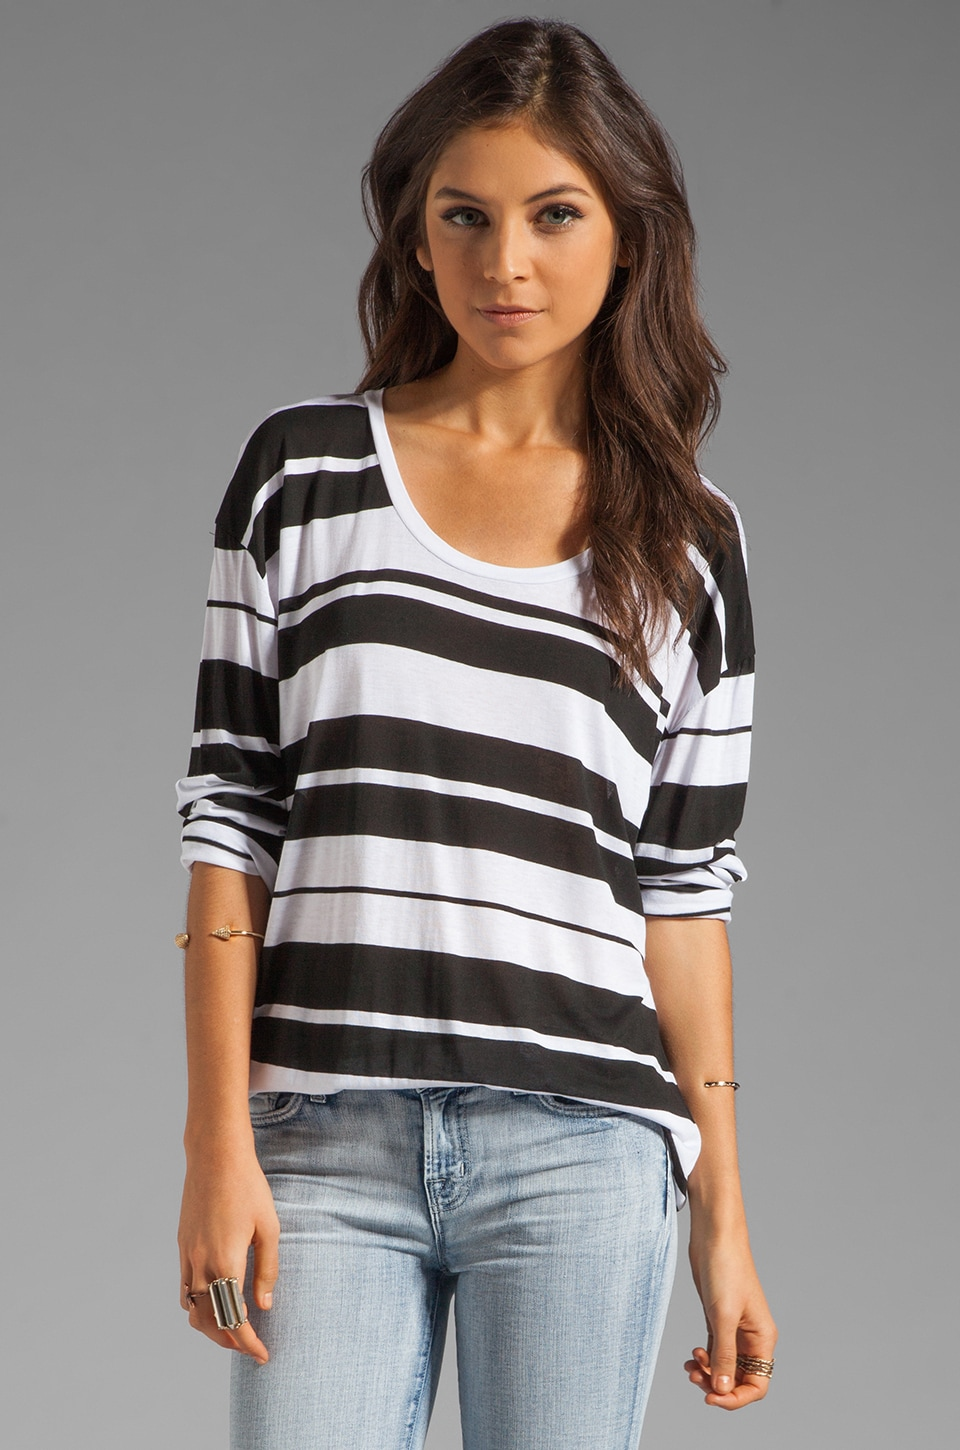 Blue Life Best Bum Long Sleeve Tee in Black/White Stripe